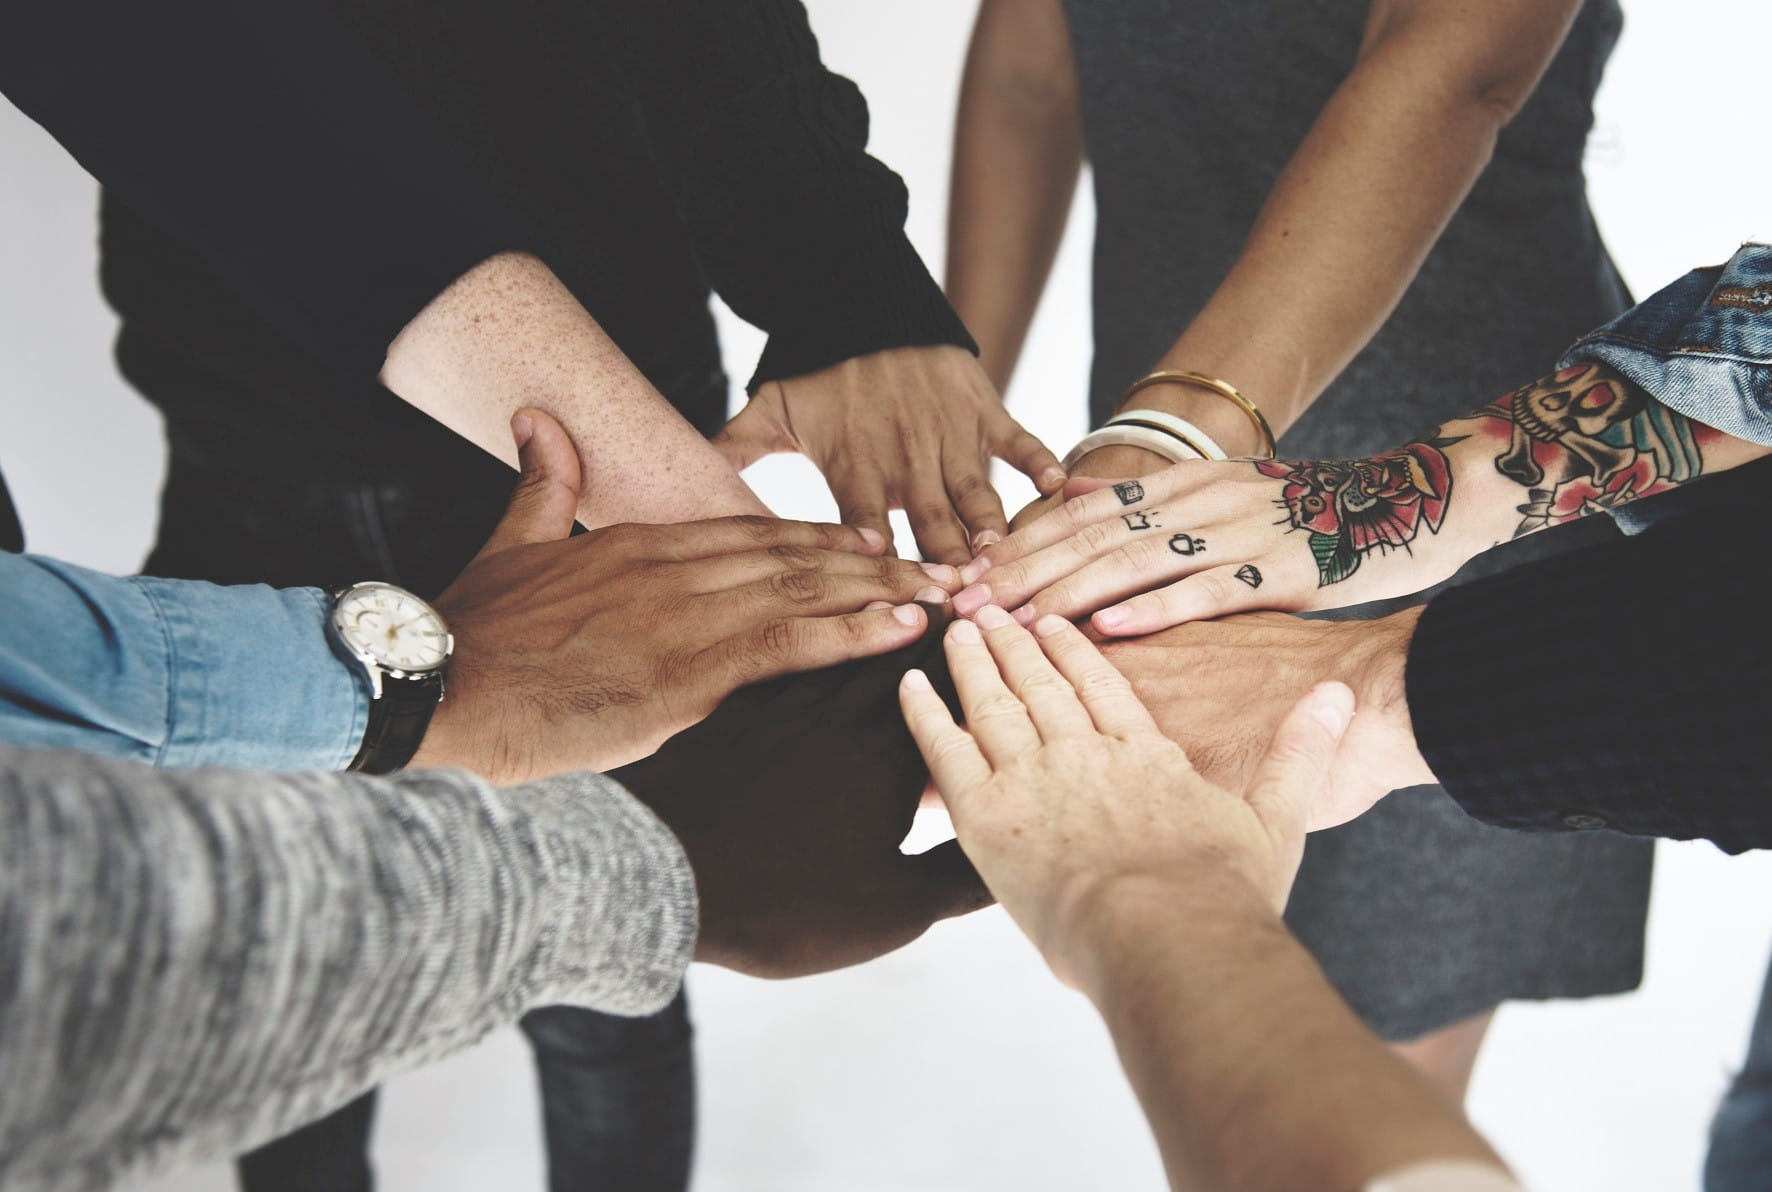 group of diverse people hands together